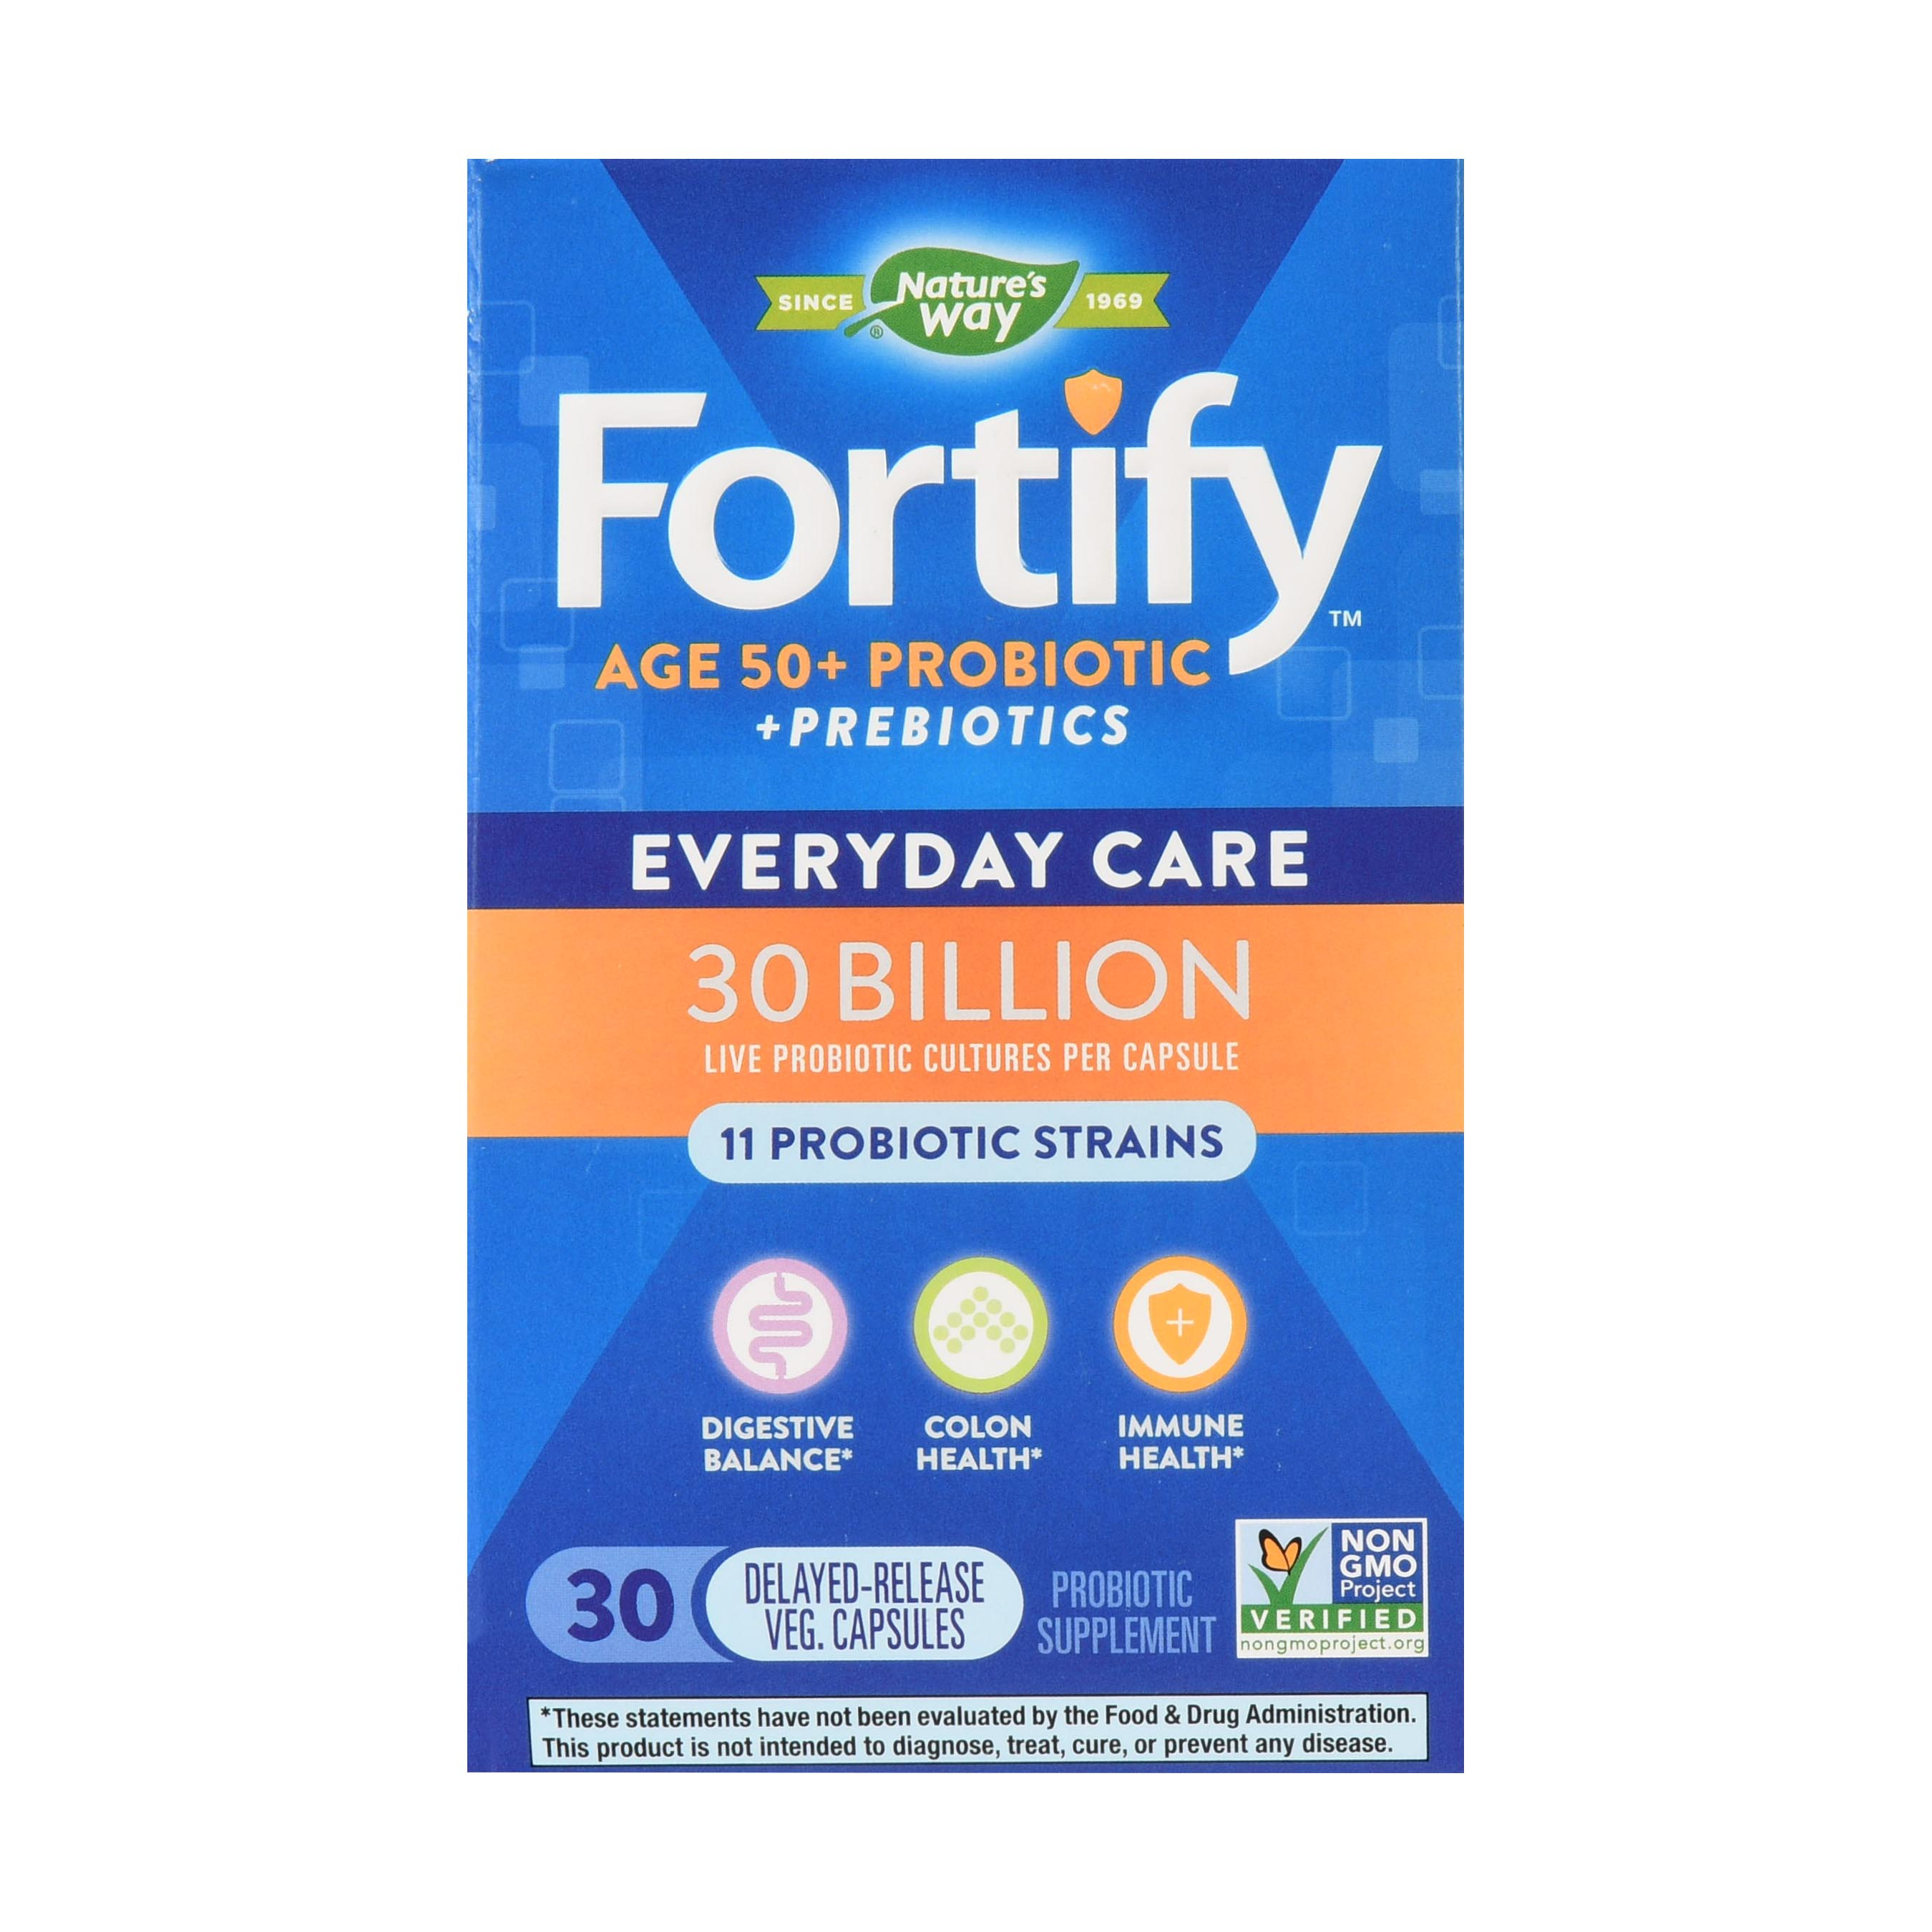 Natures Way Fortify Probiotic Age 50+ 30 Billion Live Cultures 30 Count